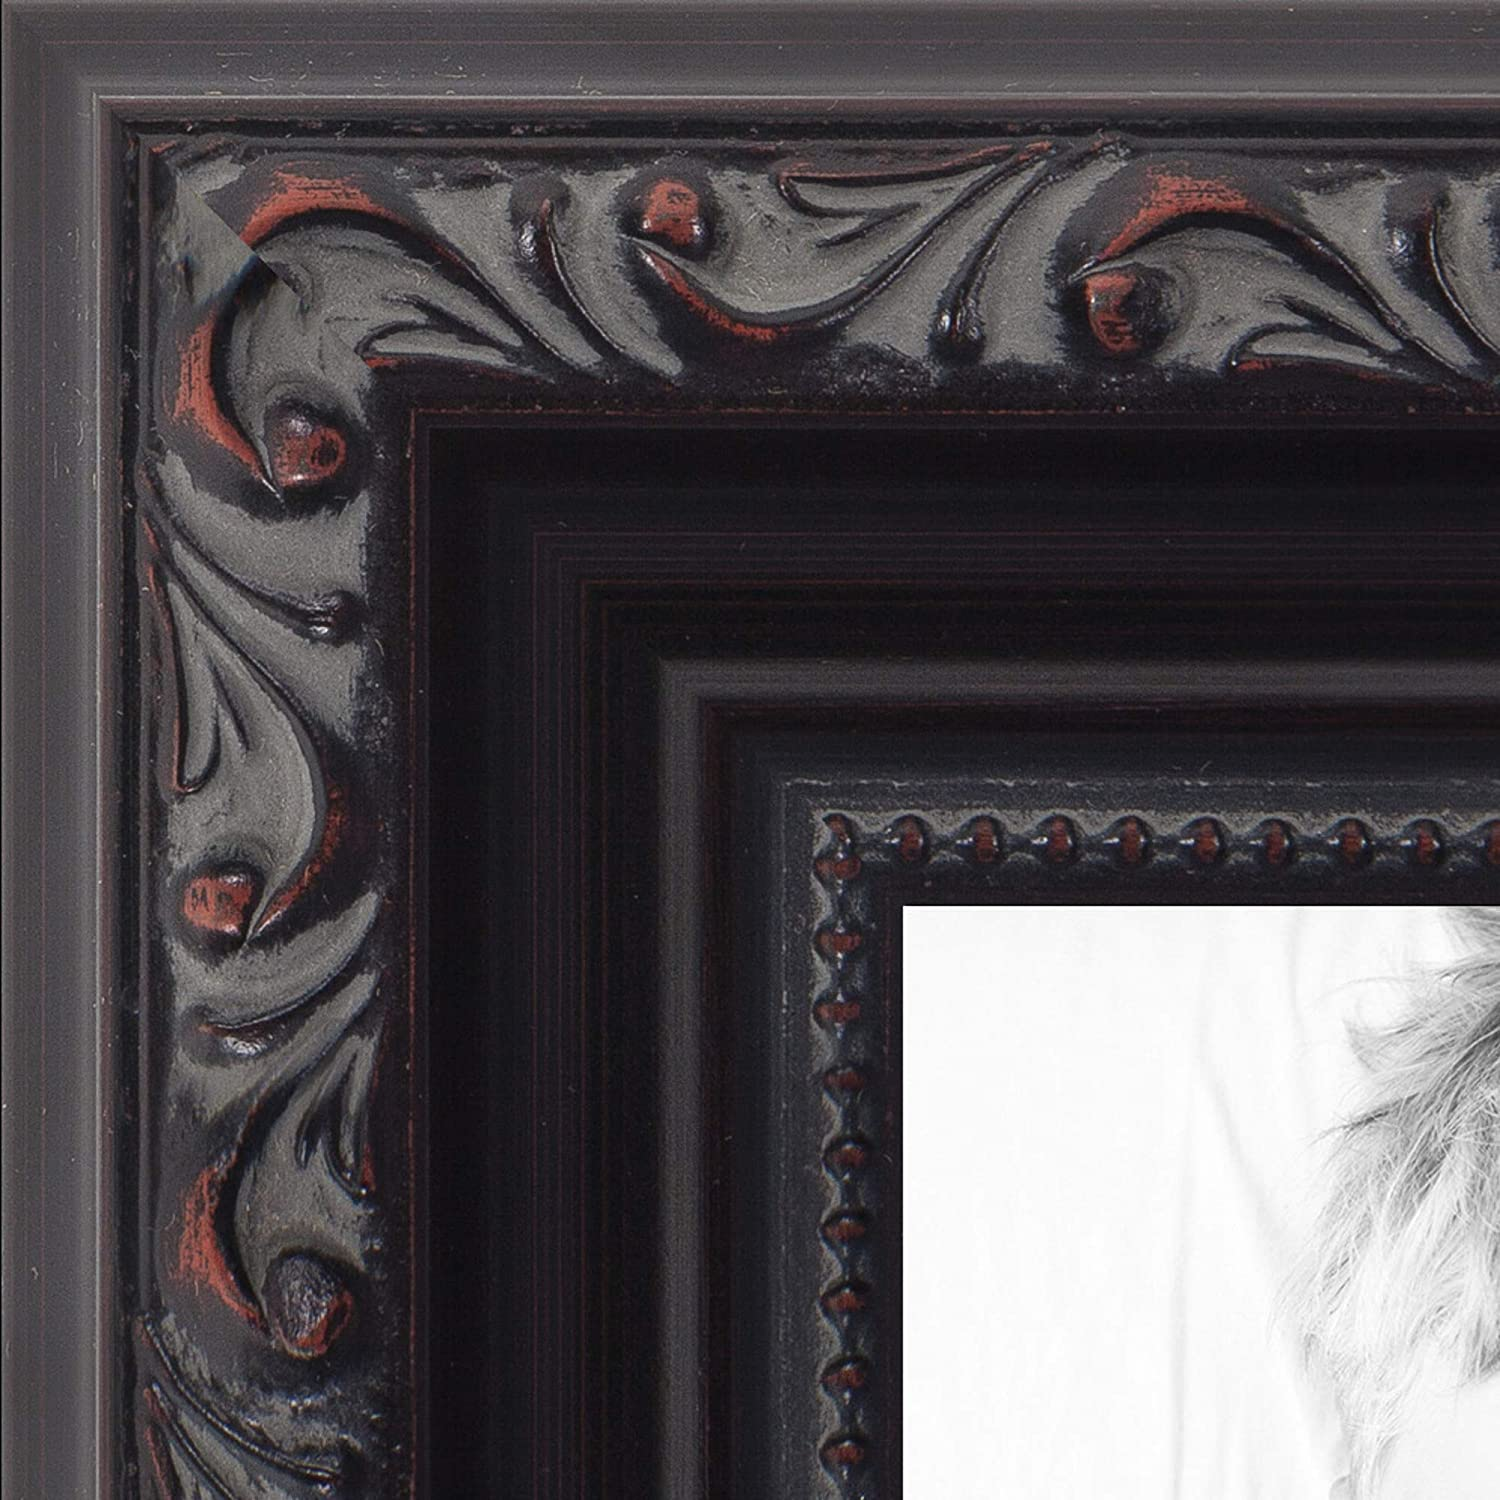 ArtToFrames 8x10 inch Black with Beads Wood Picture Frame, WOMD10188-8x10